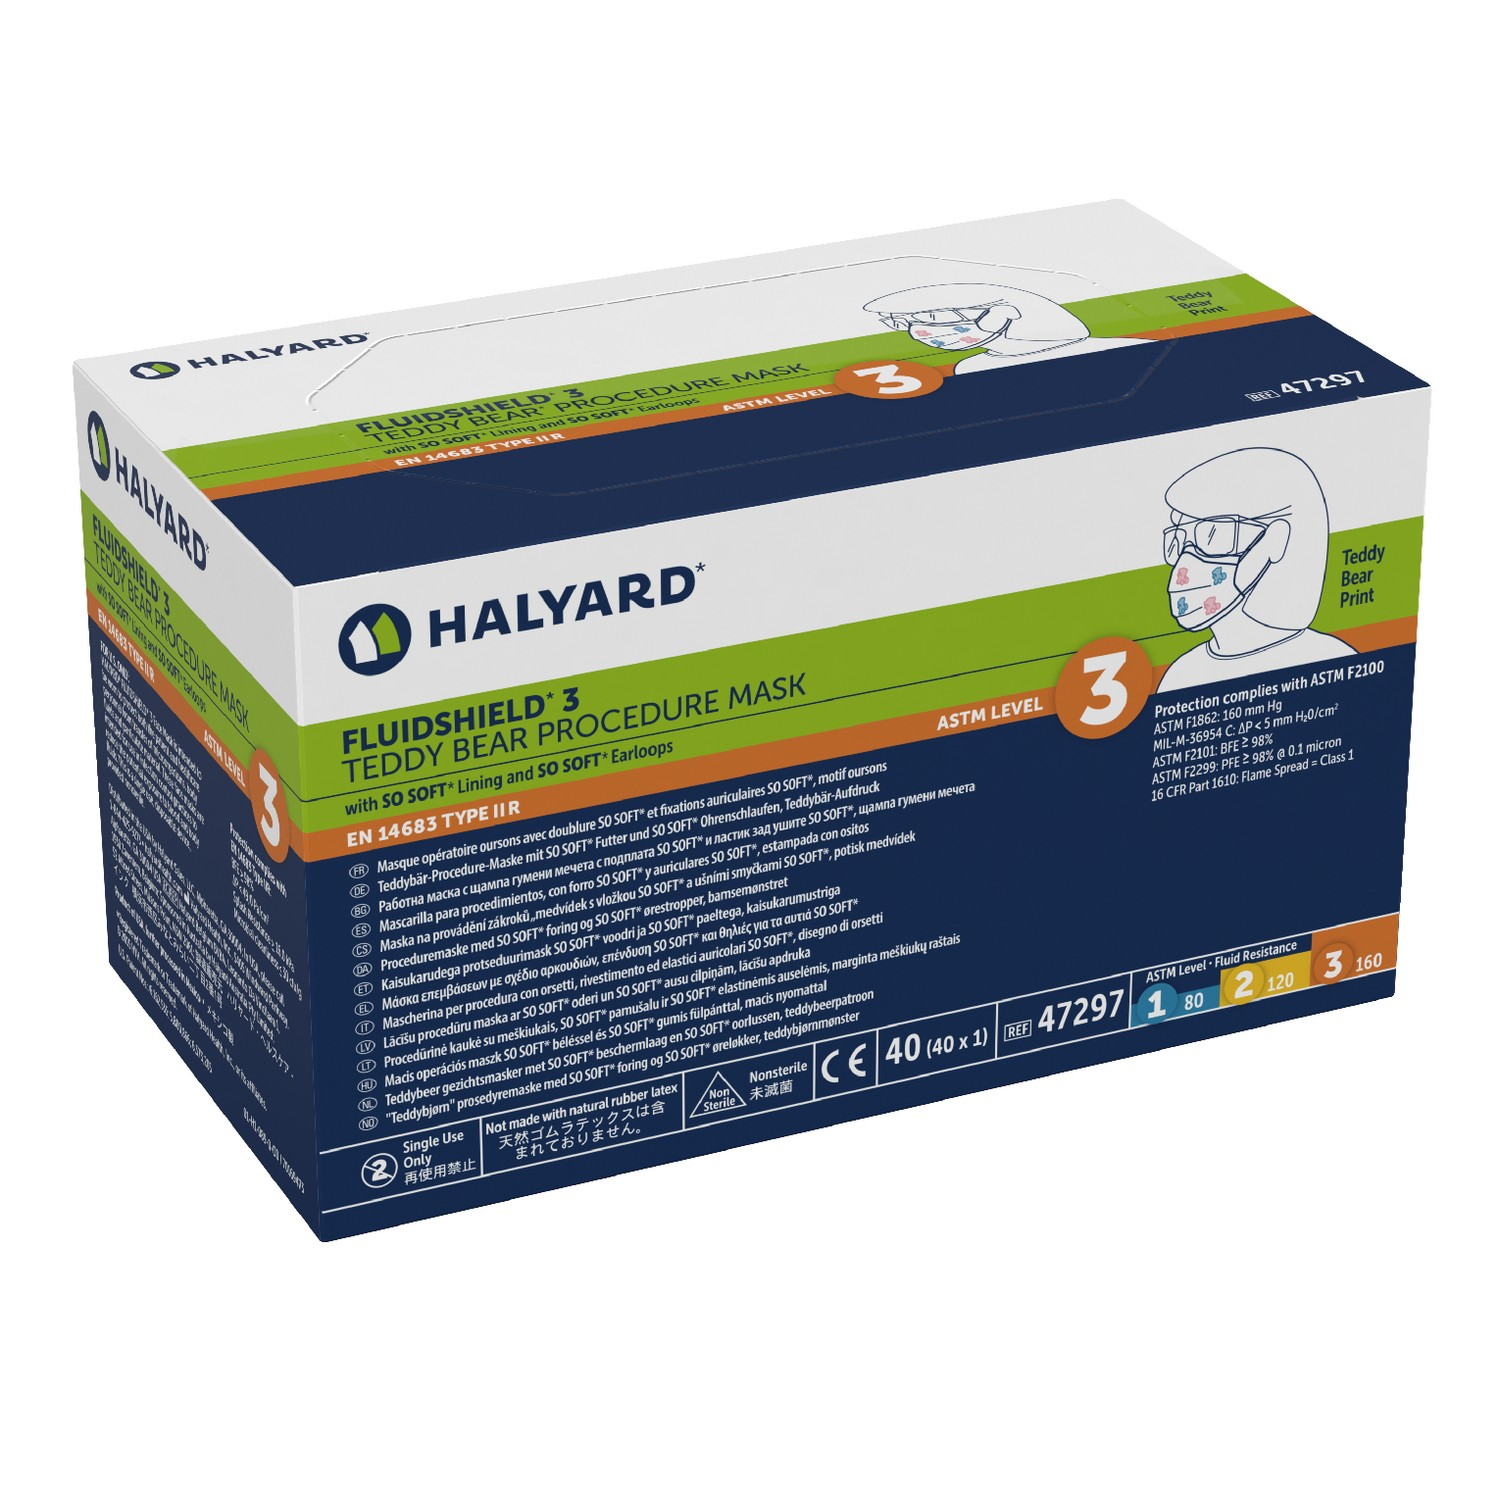 Halyard Fluidshield ASTM Level 3 Triple Layer Filtration EarLoop Fog Free Surgical Grade Masks